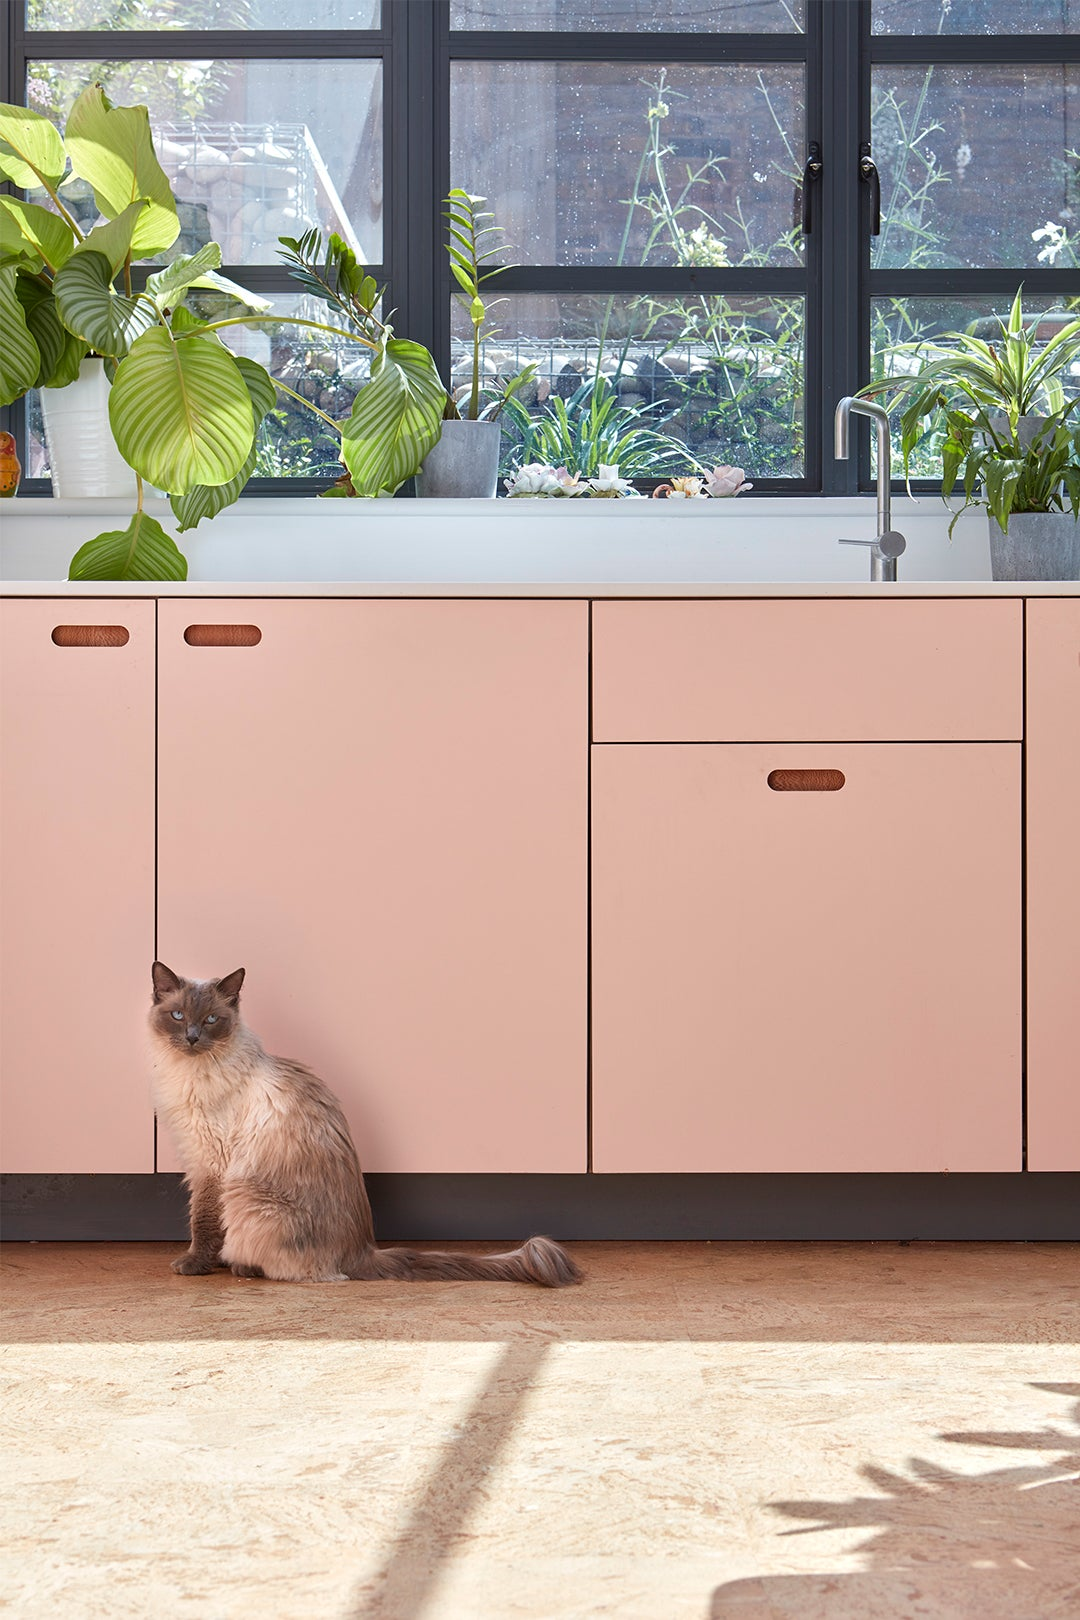 cat in front of pink kitchen cabinets